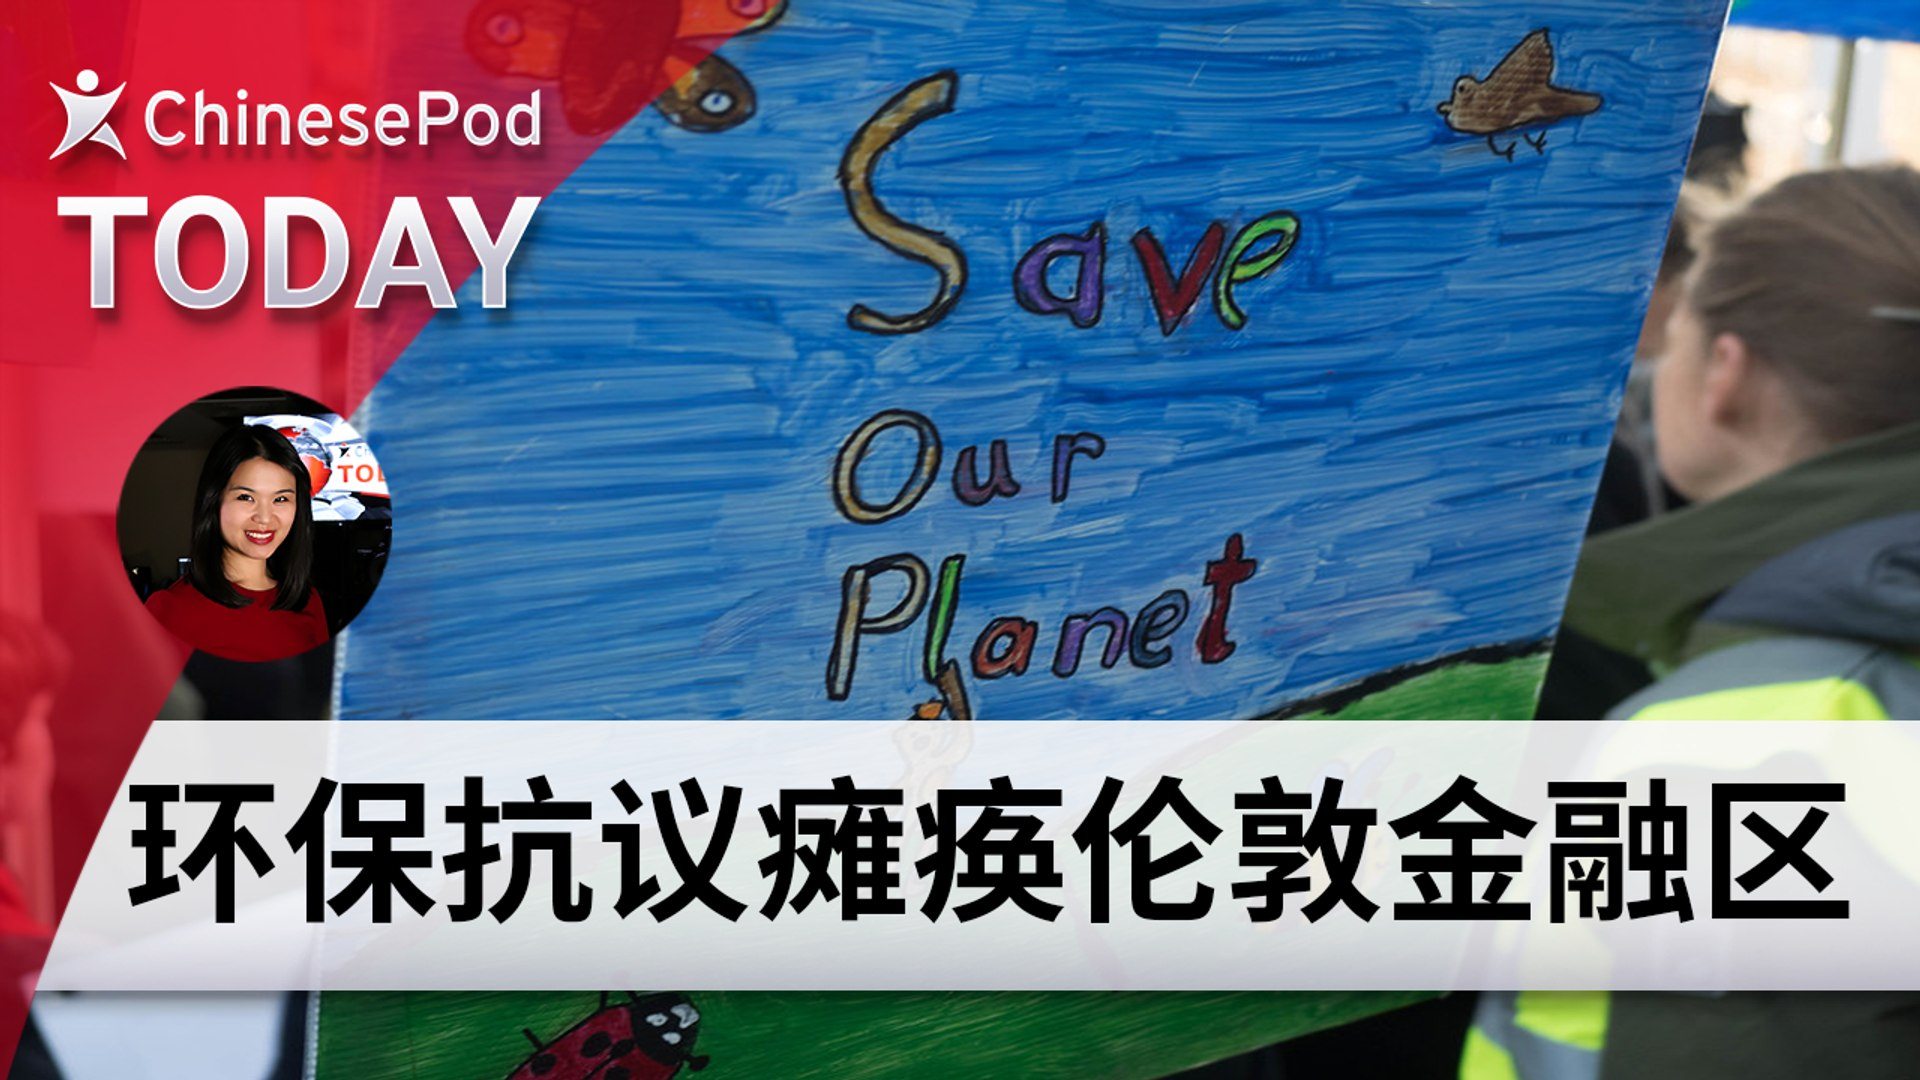 ChinesePod ChinesePod Today: Activists Disrupt London's Financial District (simp. characters)